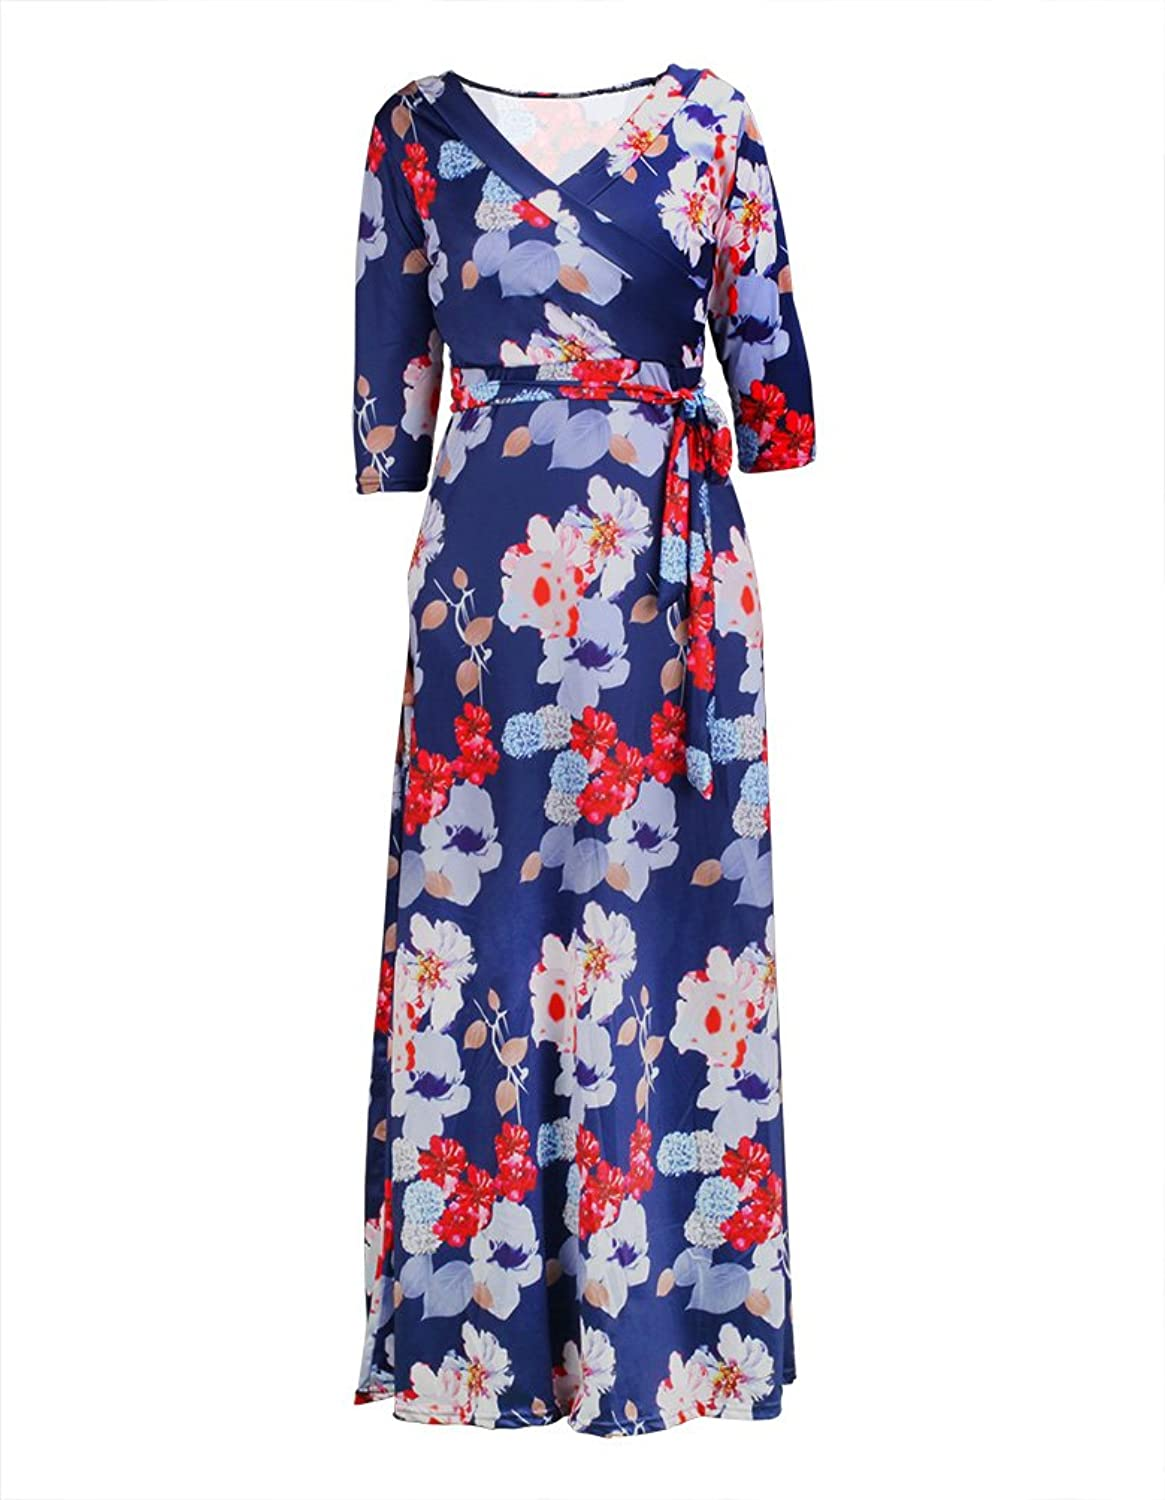 285682e05f Features : Flower printed , Bohemia, Boho, vintage , floor length ,wrap  bodycon dress Perfect Dress for Summer fall and spring .Vey cute and  elegant .Sexy V ...